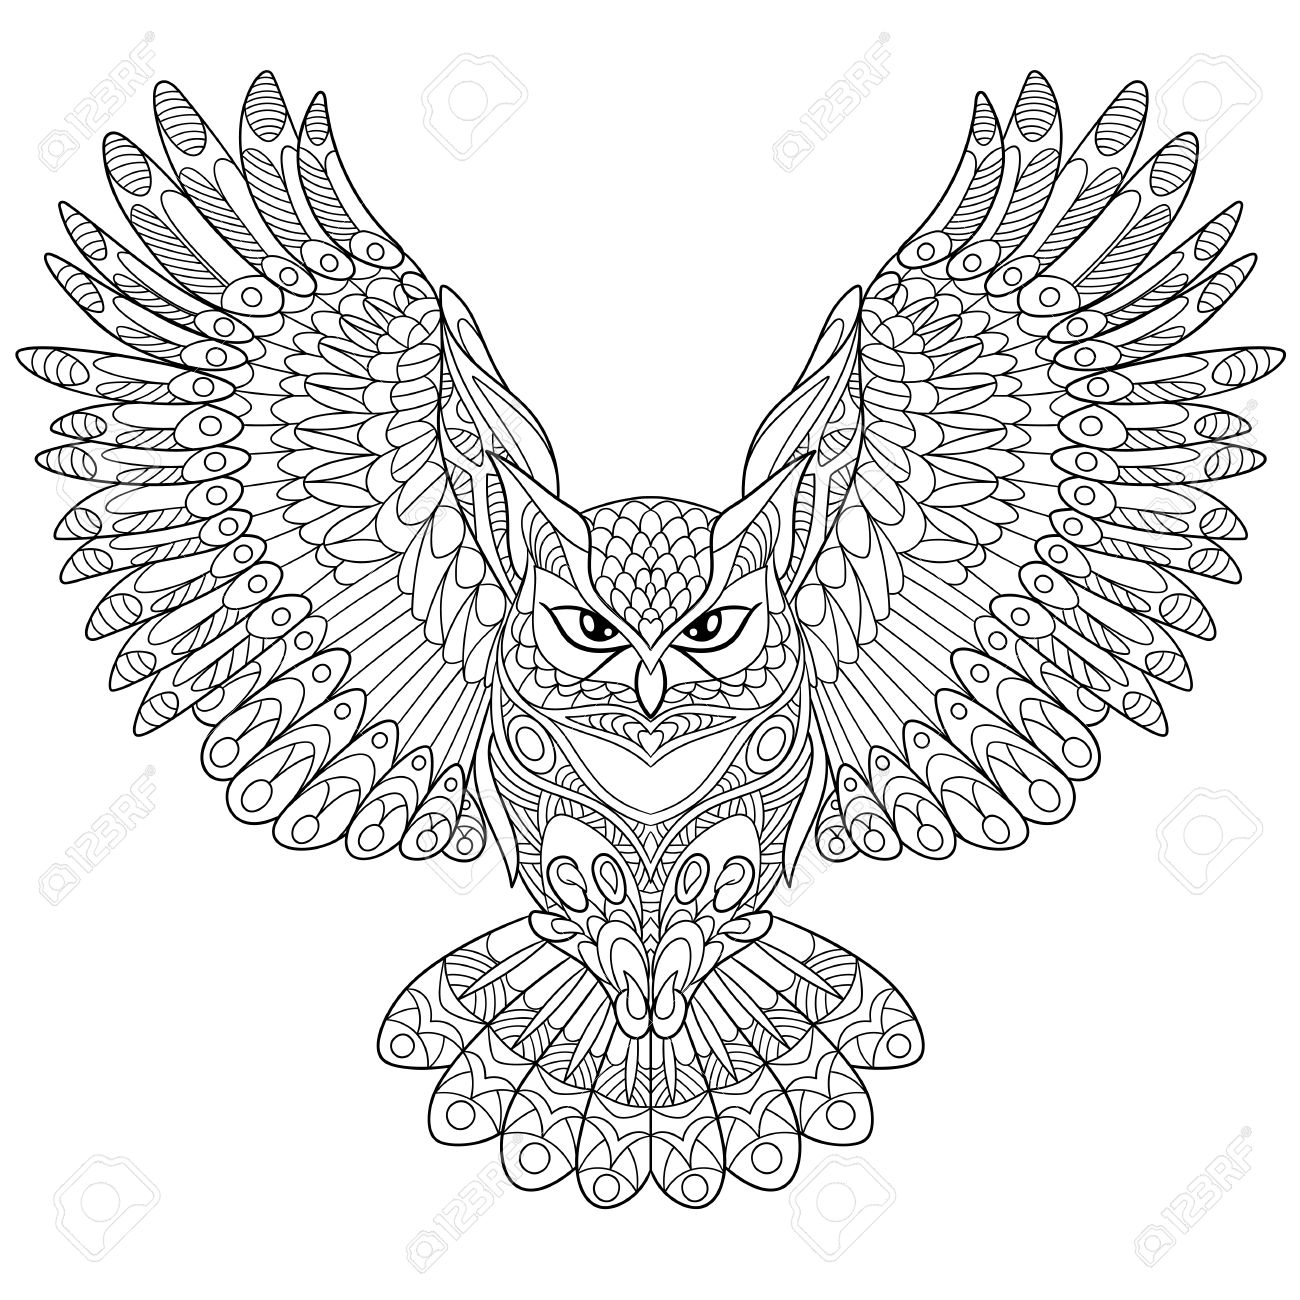 1300x1300 Cartoon Eagle Owl, Isolated On White Background. Hand Drawn Sketch